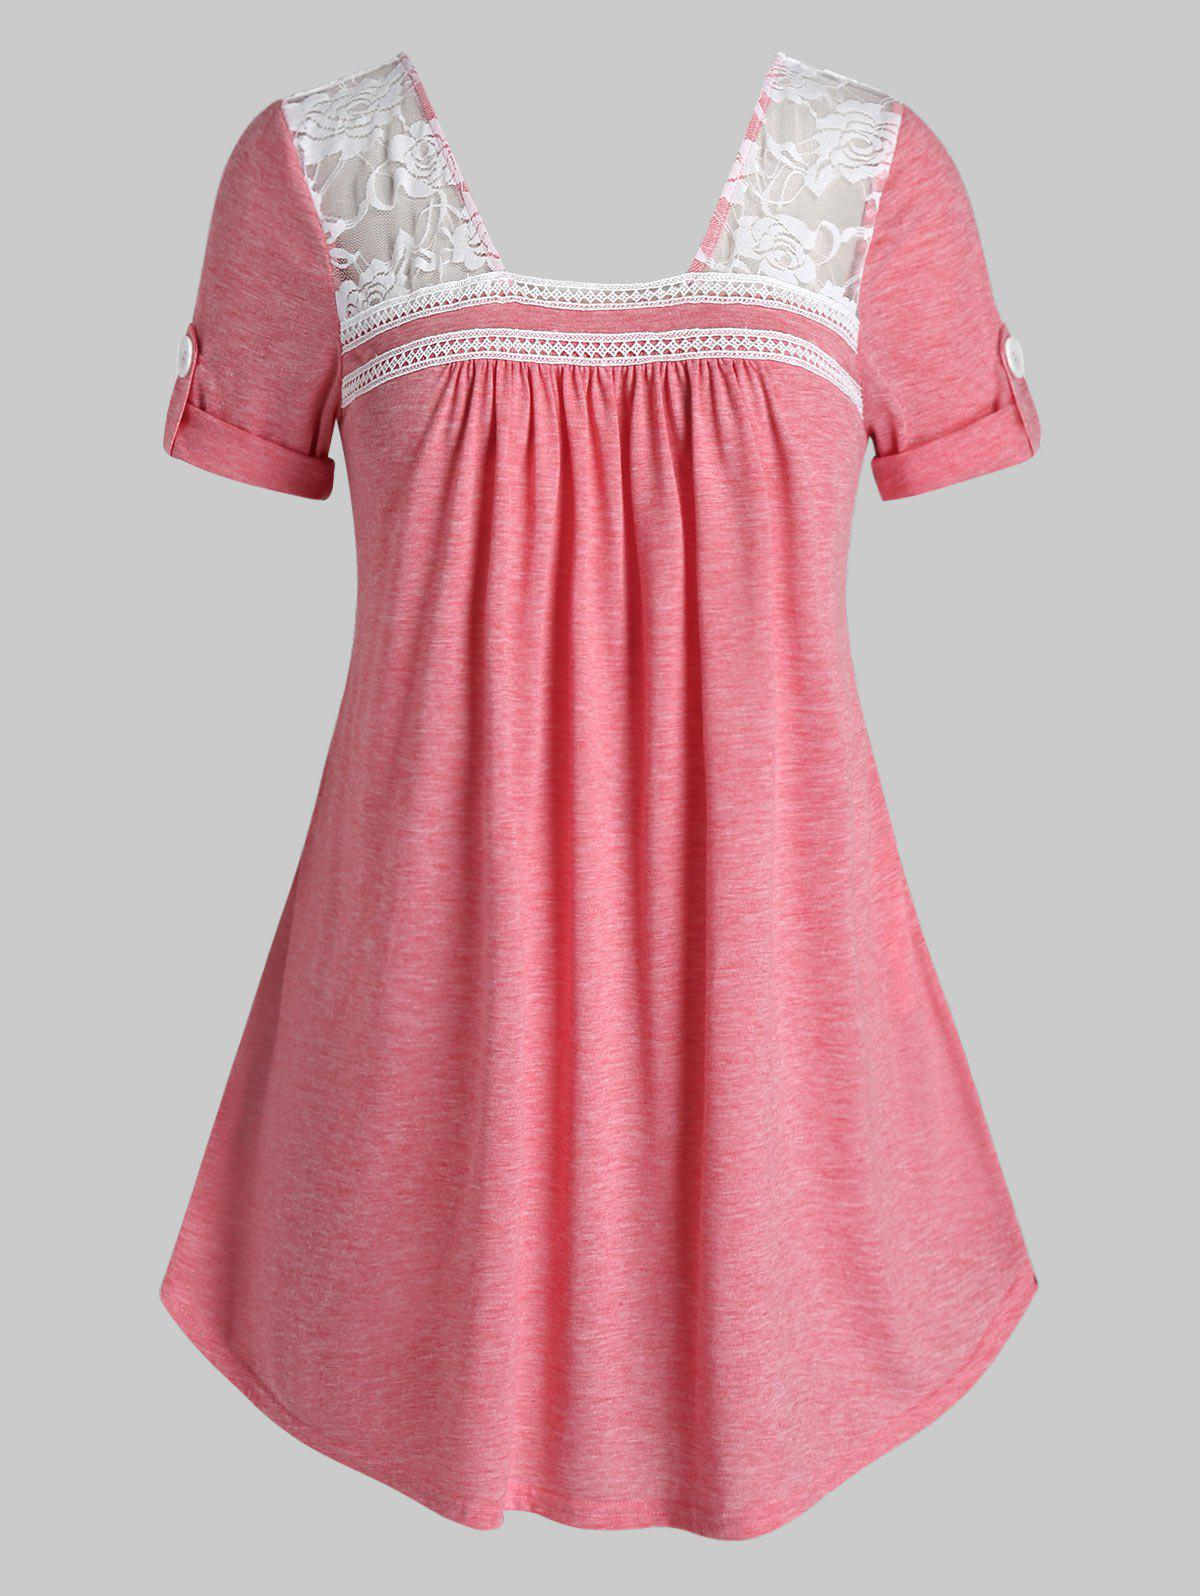 Plus Size Lace Insert Roll Up Sleeve T Shirt - LIGHT CORAL 4X